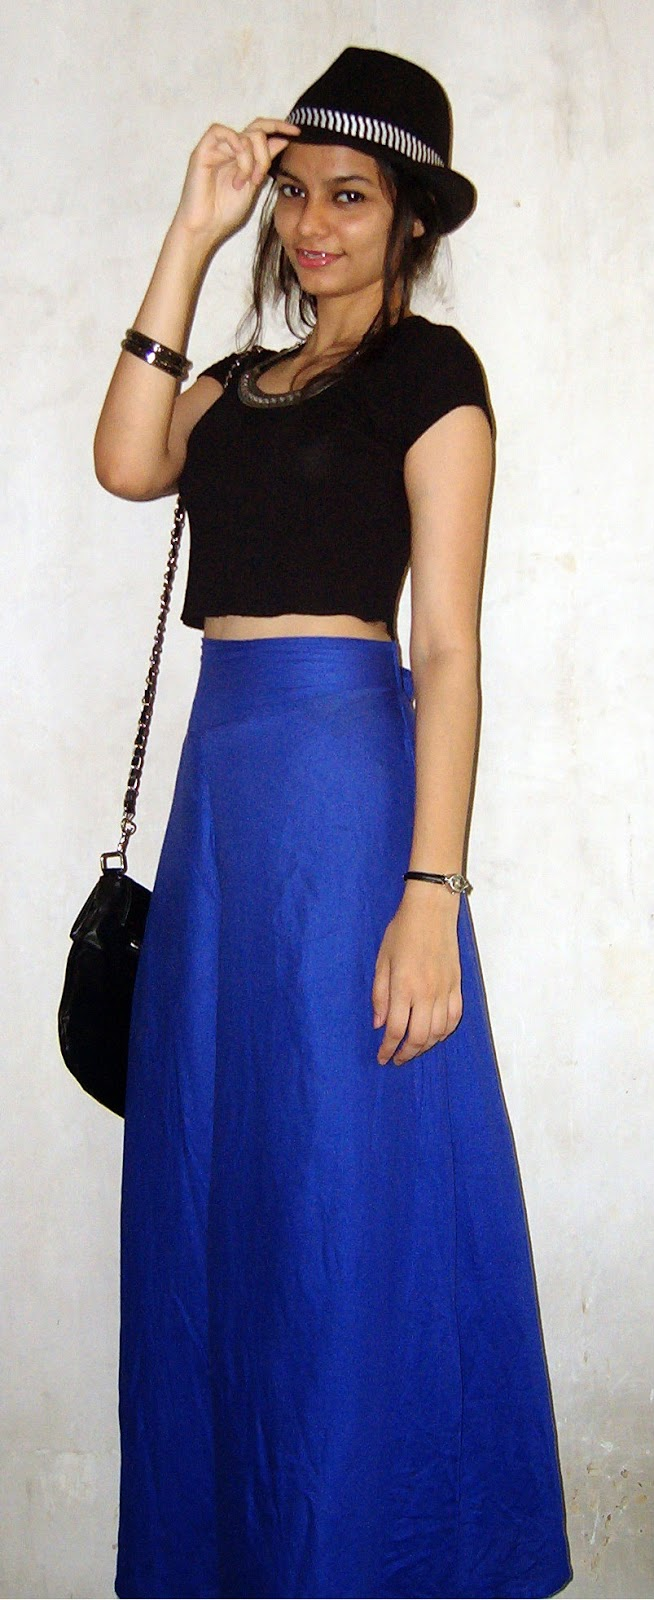 palazzo pants, croptop, black basic crop top, how to wear palazzo pants with croptops, short tops, mumbai fashion blogger, mumbai streetstyle